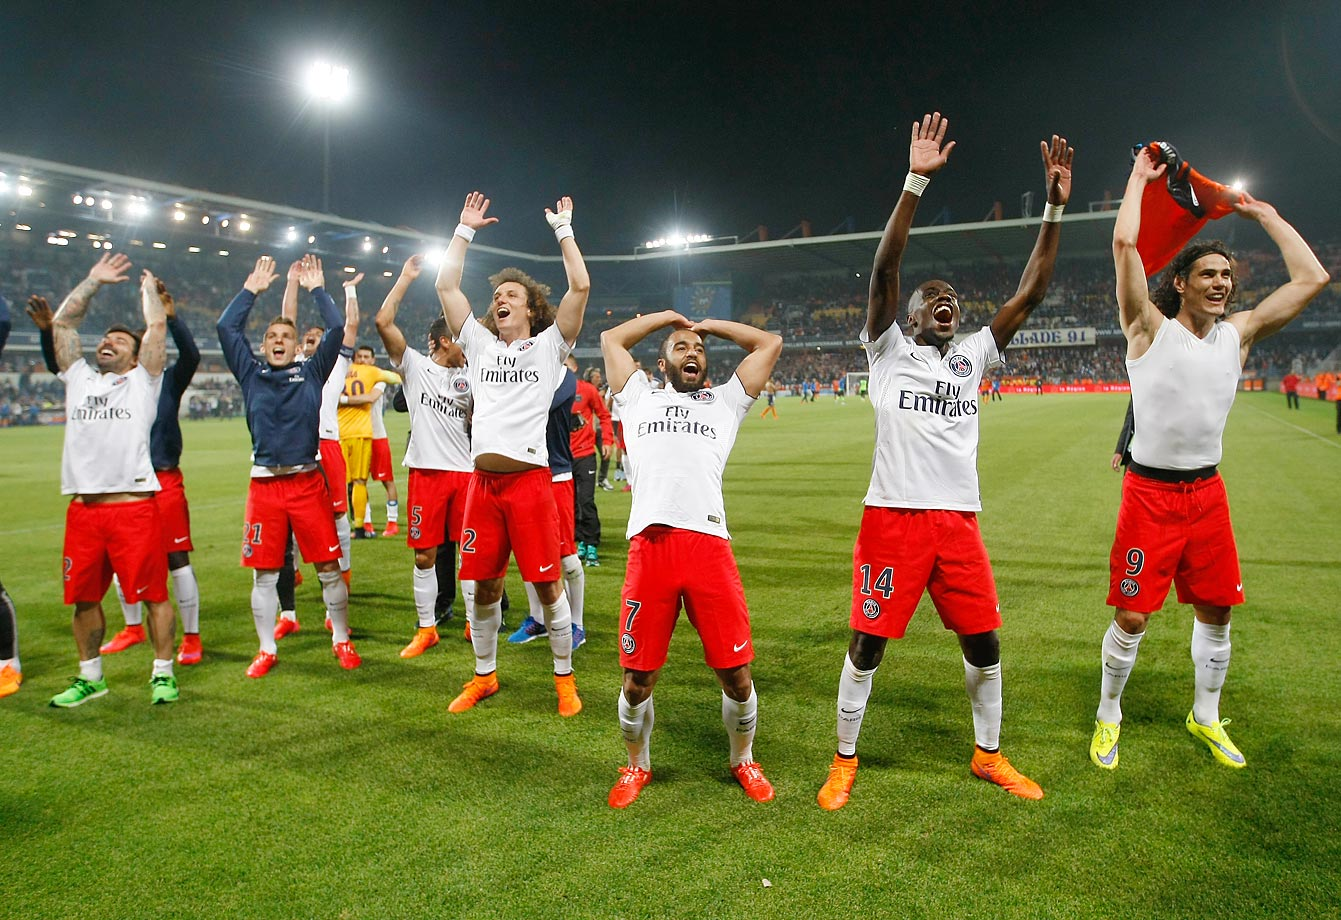 Paris Saint-Germain players celebrate winning the French League One title in France.